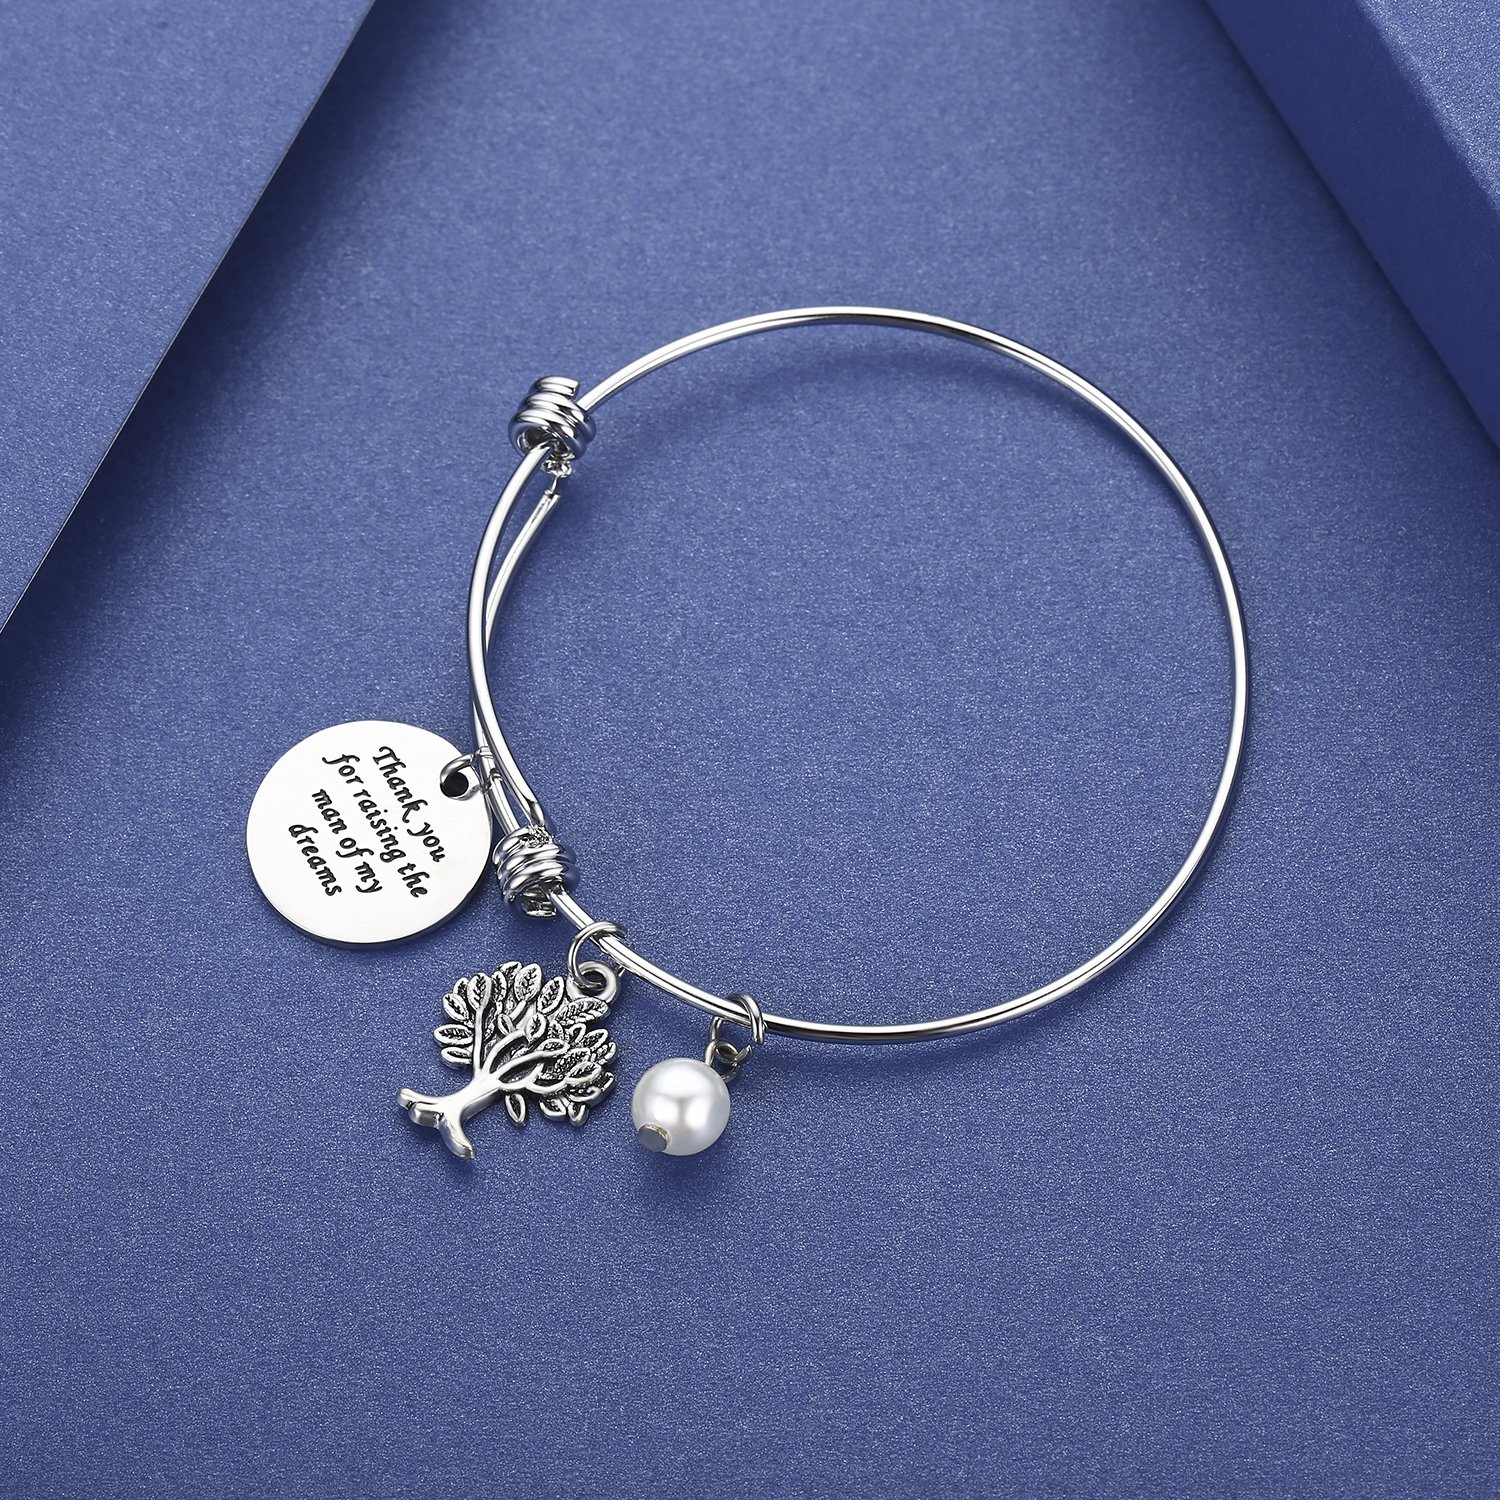 CJ&M Mother In Law Gift Family Tree Bracelet - Thank You For Raising The Man / I Will Take Care Of Her Always Bracelet Christmas Gifts,Mother's Day Gifts (Thank-Raising-Bracelet) by CJ&M (Image #2)